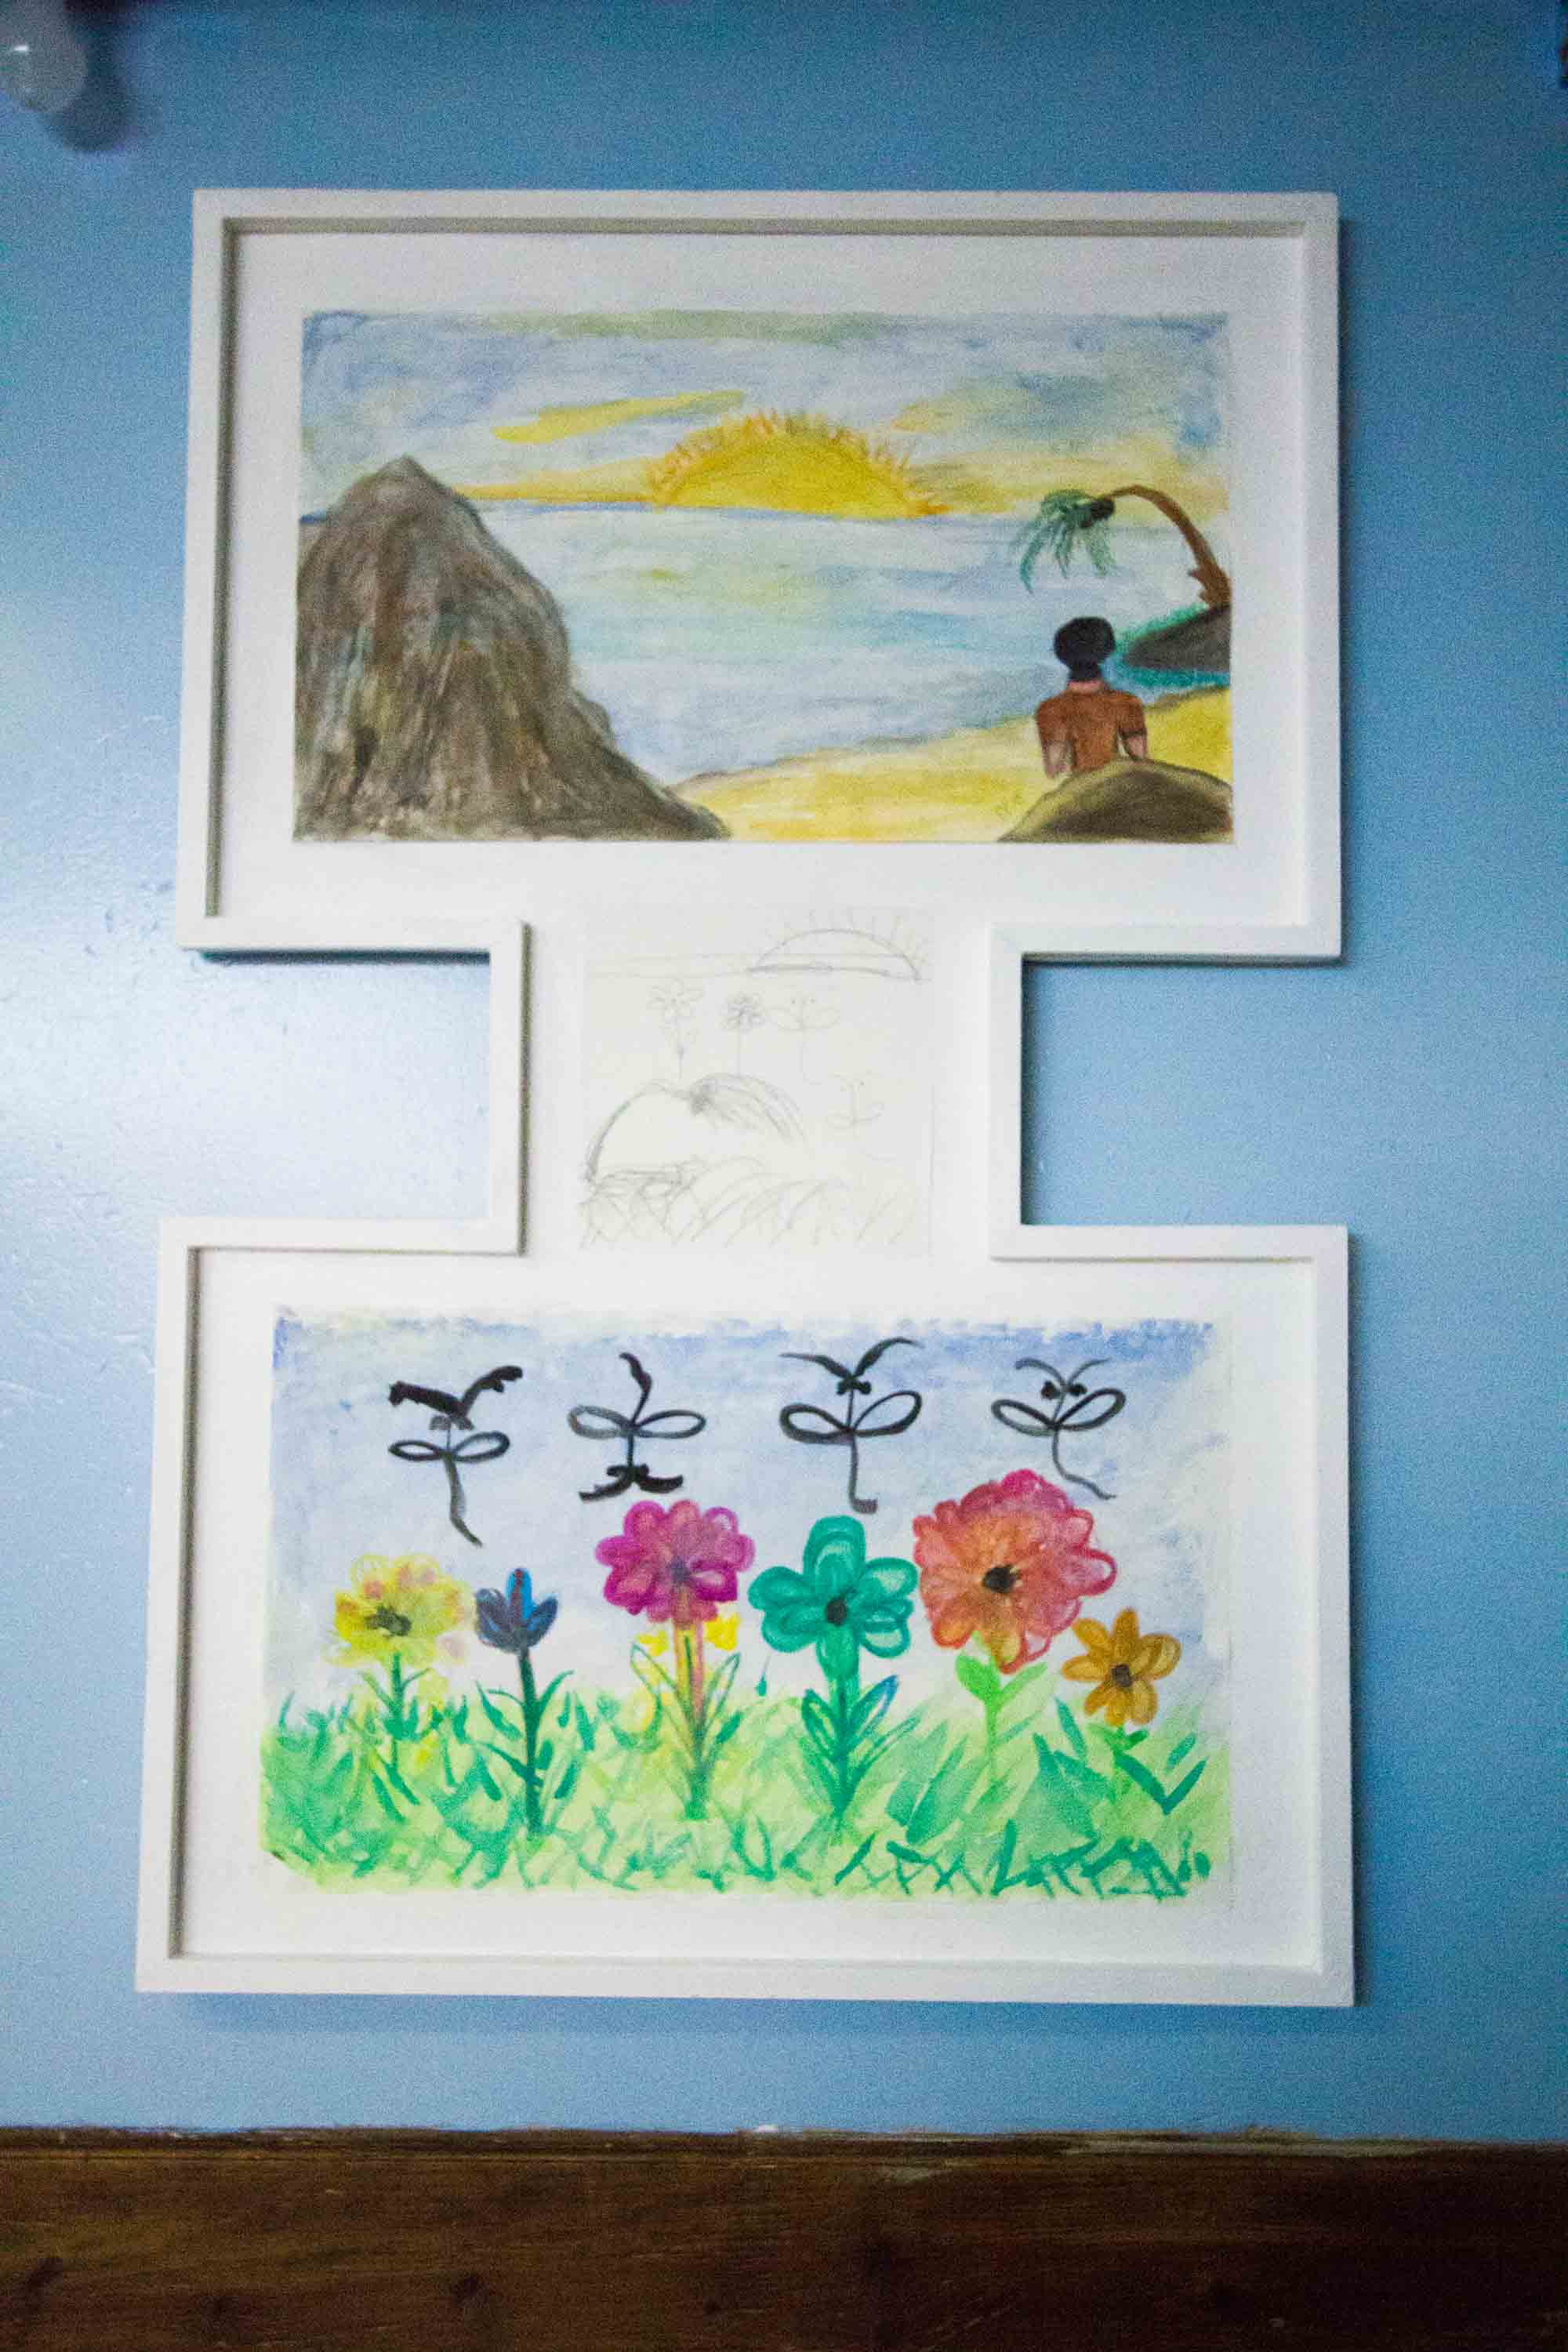 The final drawings for Karen (B) and Evelyn (T). The smaller drawing was made by the two artists together while they each held the same pencil.